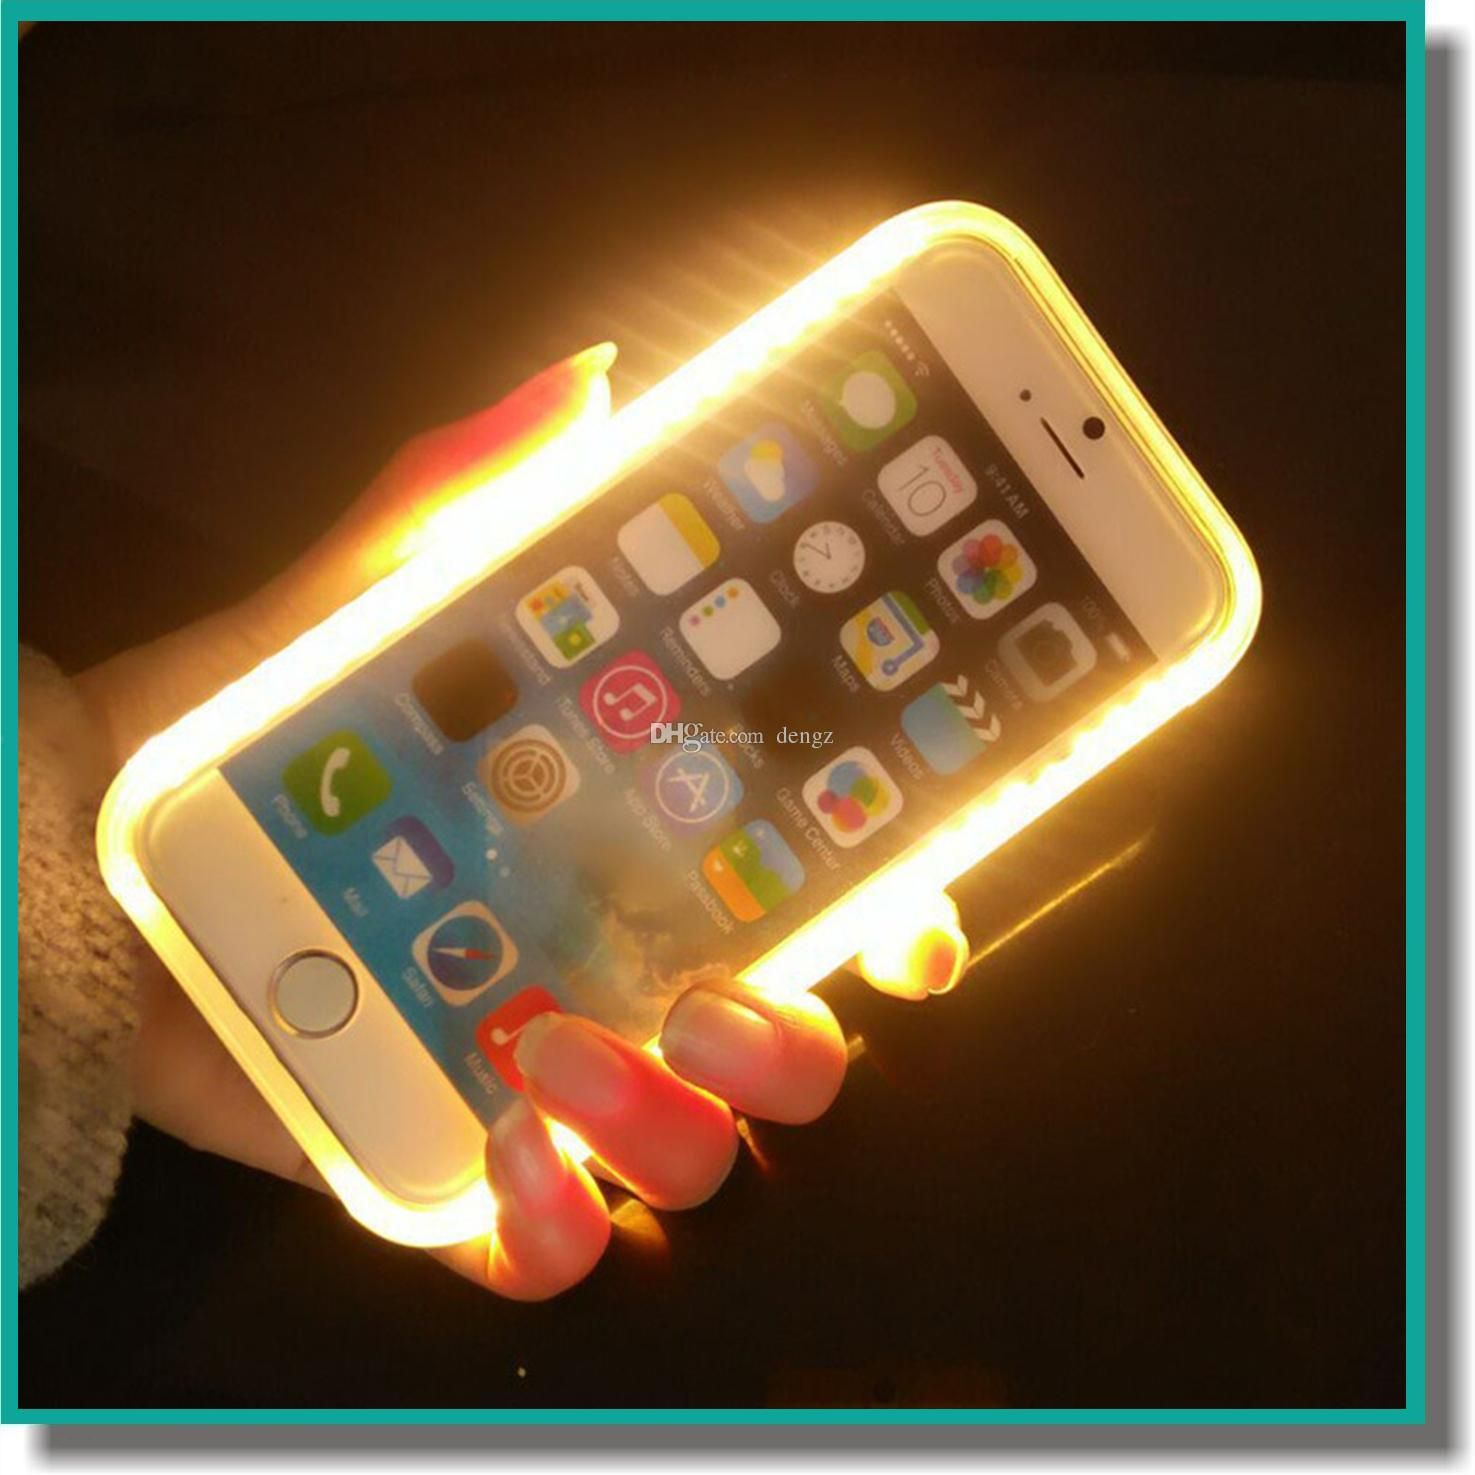 Luxury Illuminated Phone Case Selfie Hard Cover Case With Led Light For Iphone 6/6s/6 Plus S6 S7 With Retail Package Cute Phone Cases Cheap Phone Cases From Dengz, $8.94| Dhgate.Com